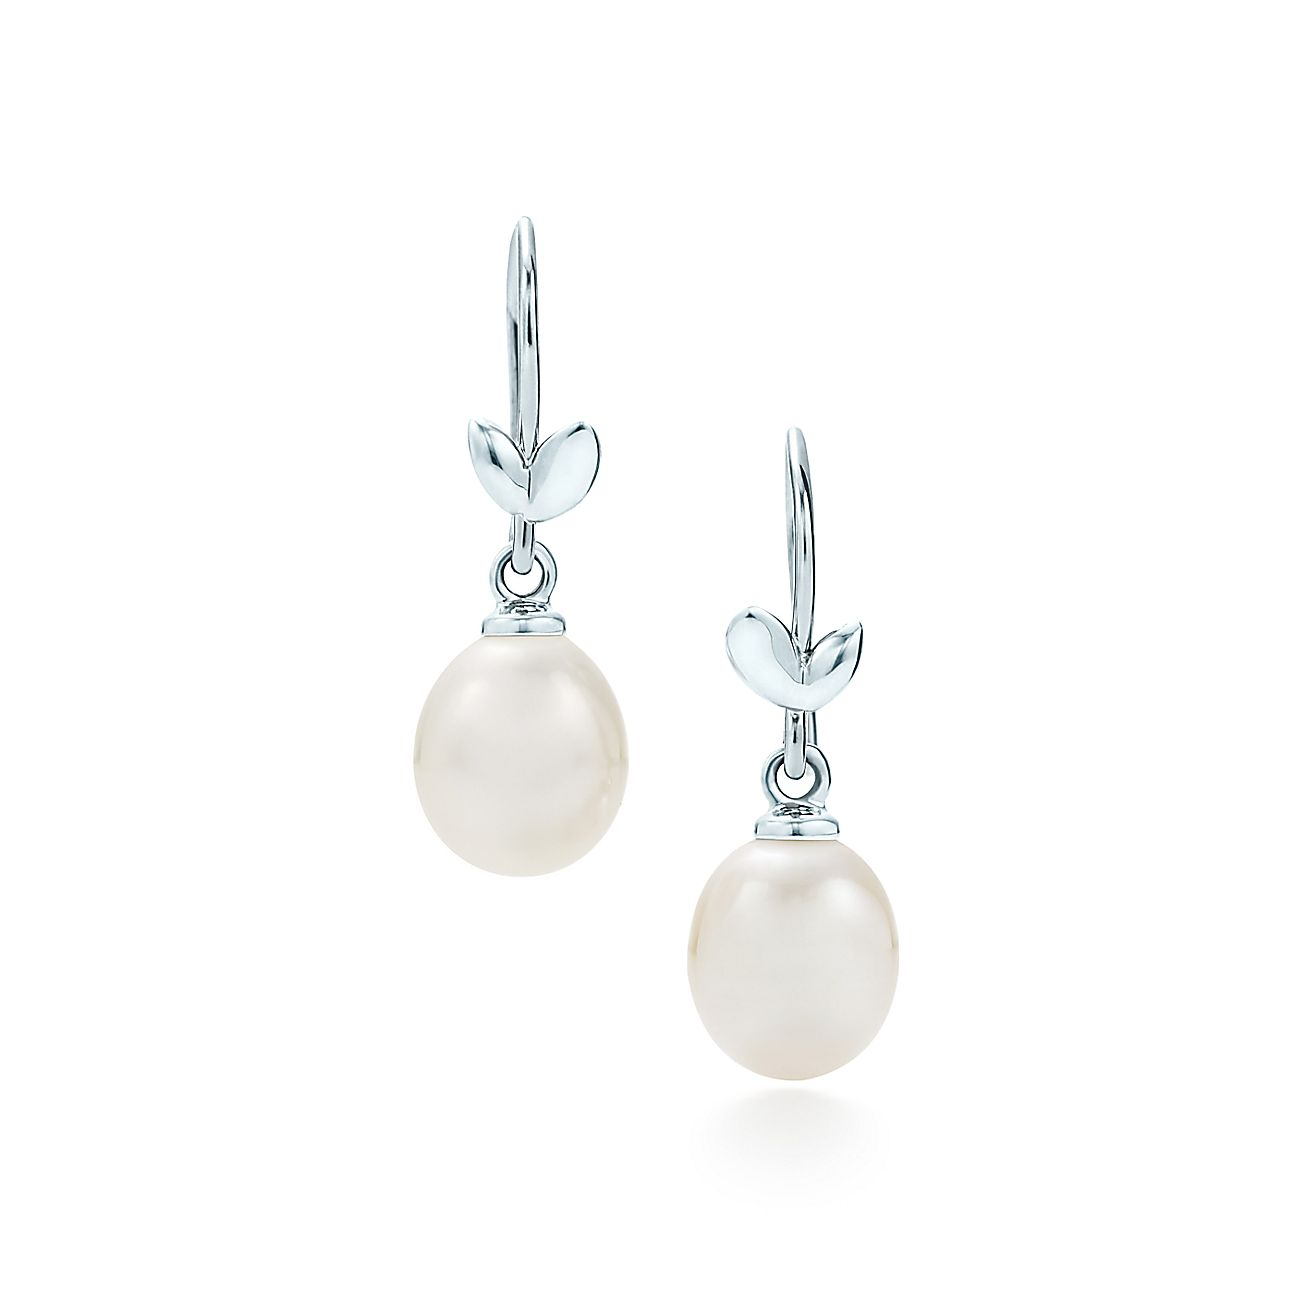 Paloma Pico Olive Leaf Drop Earrings In Sterling Silver With Pearls Tiffany Co